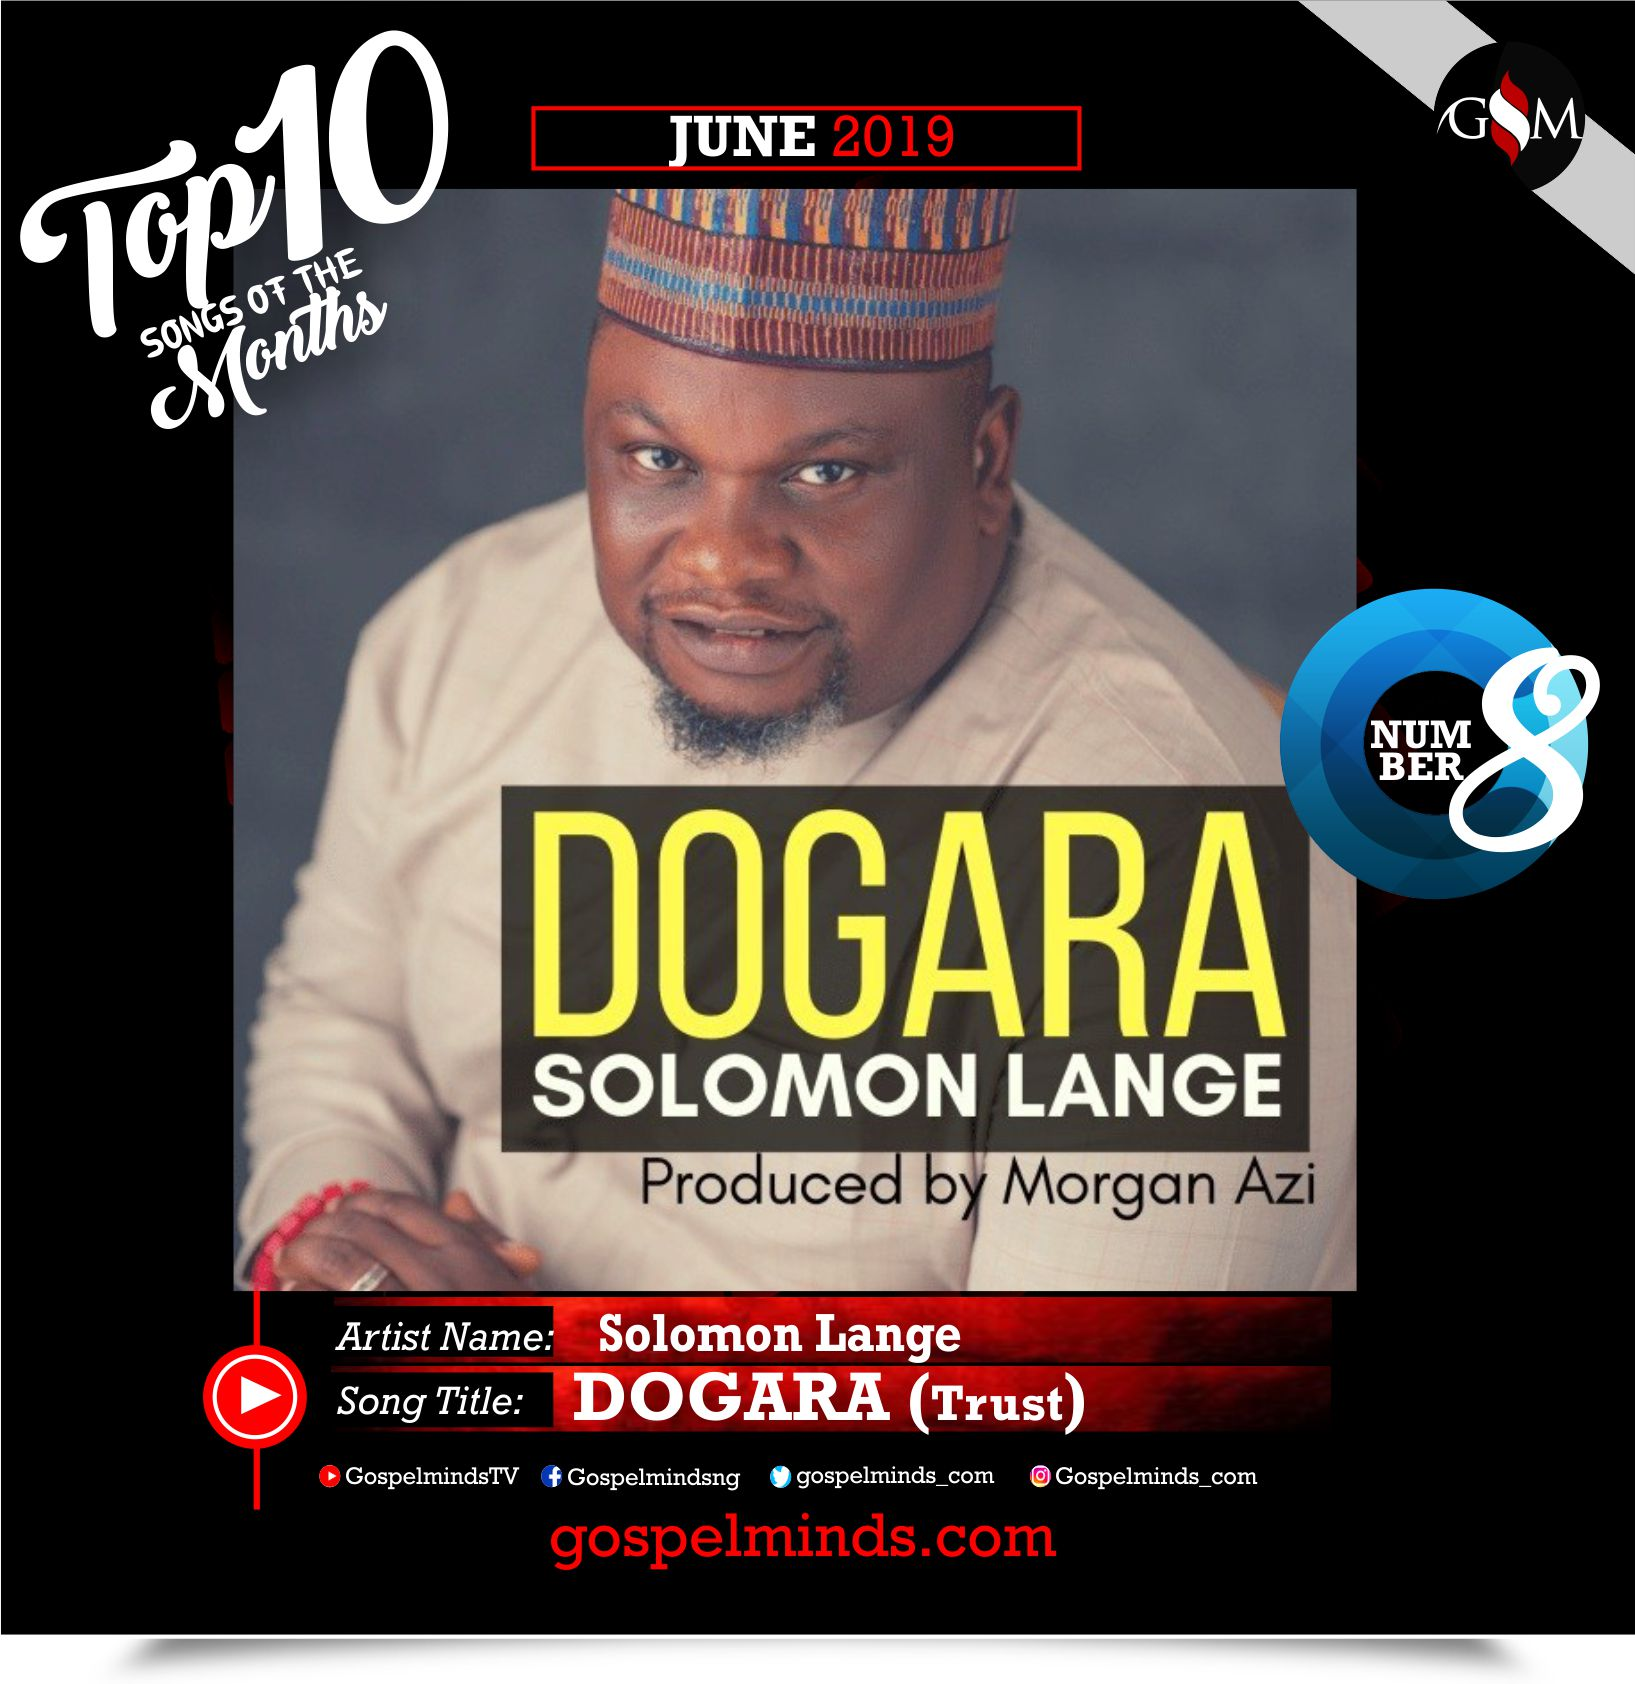 Top 10 Gospel Songs of The Month - June 2019 GospelMinds Ent. (Solomon Lange – Dogara)